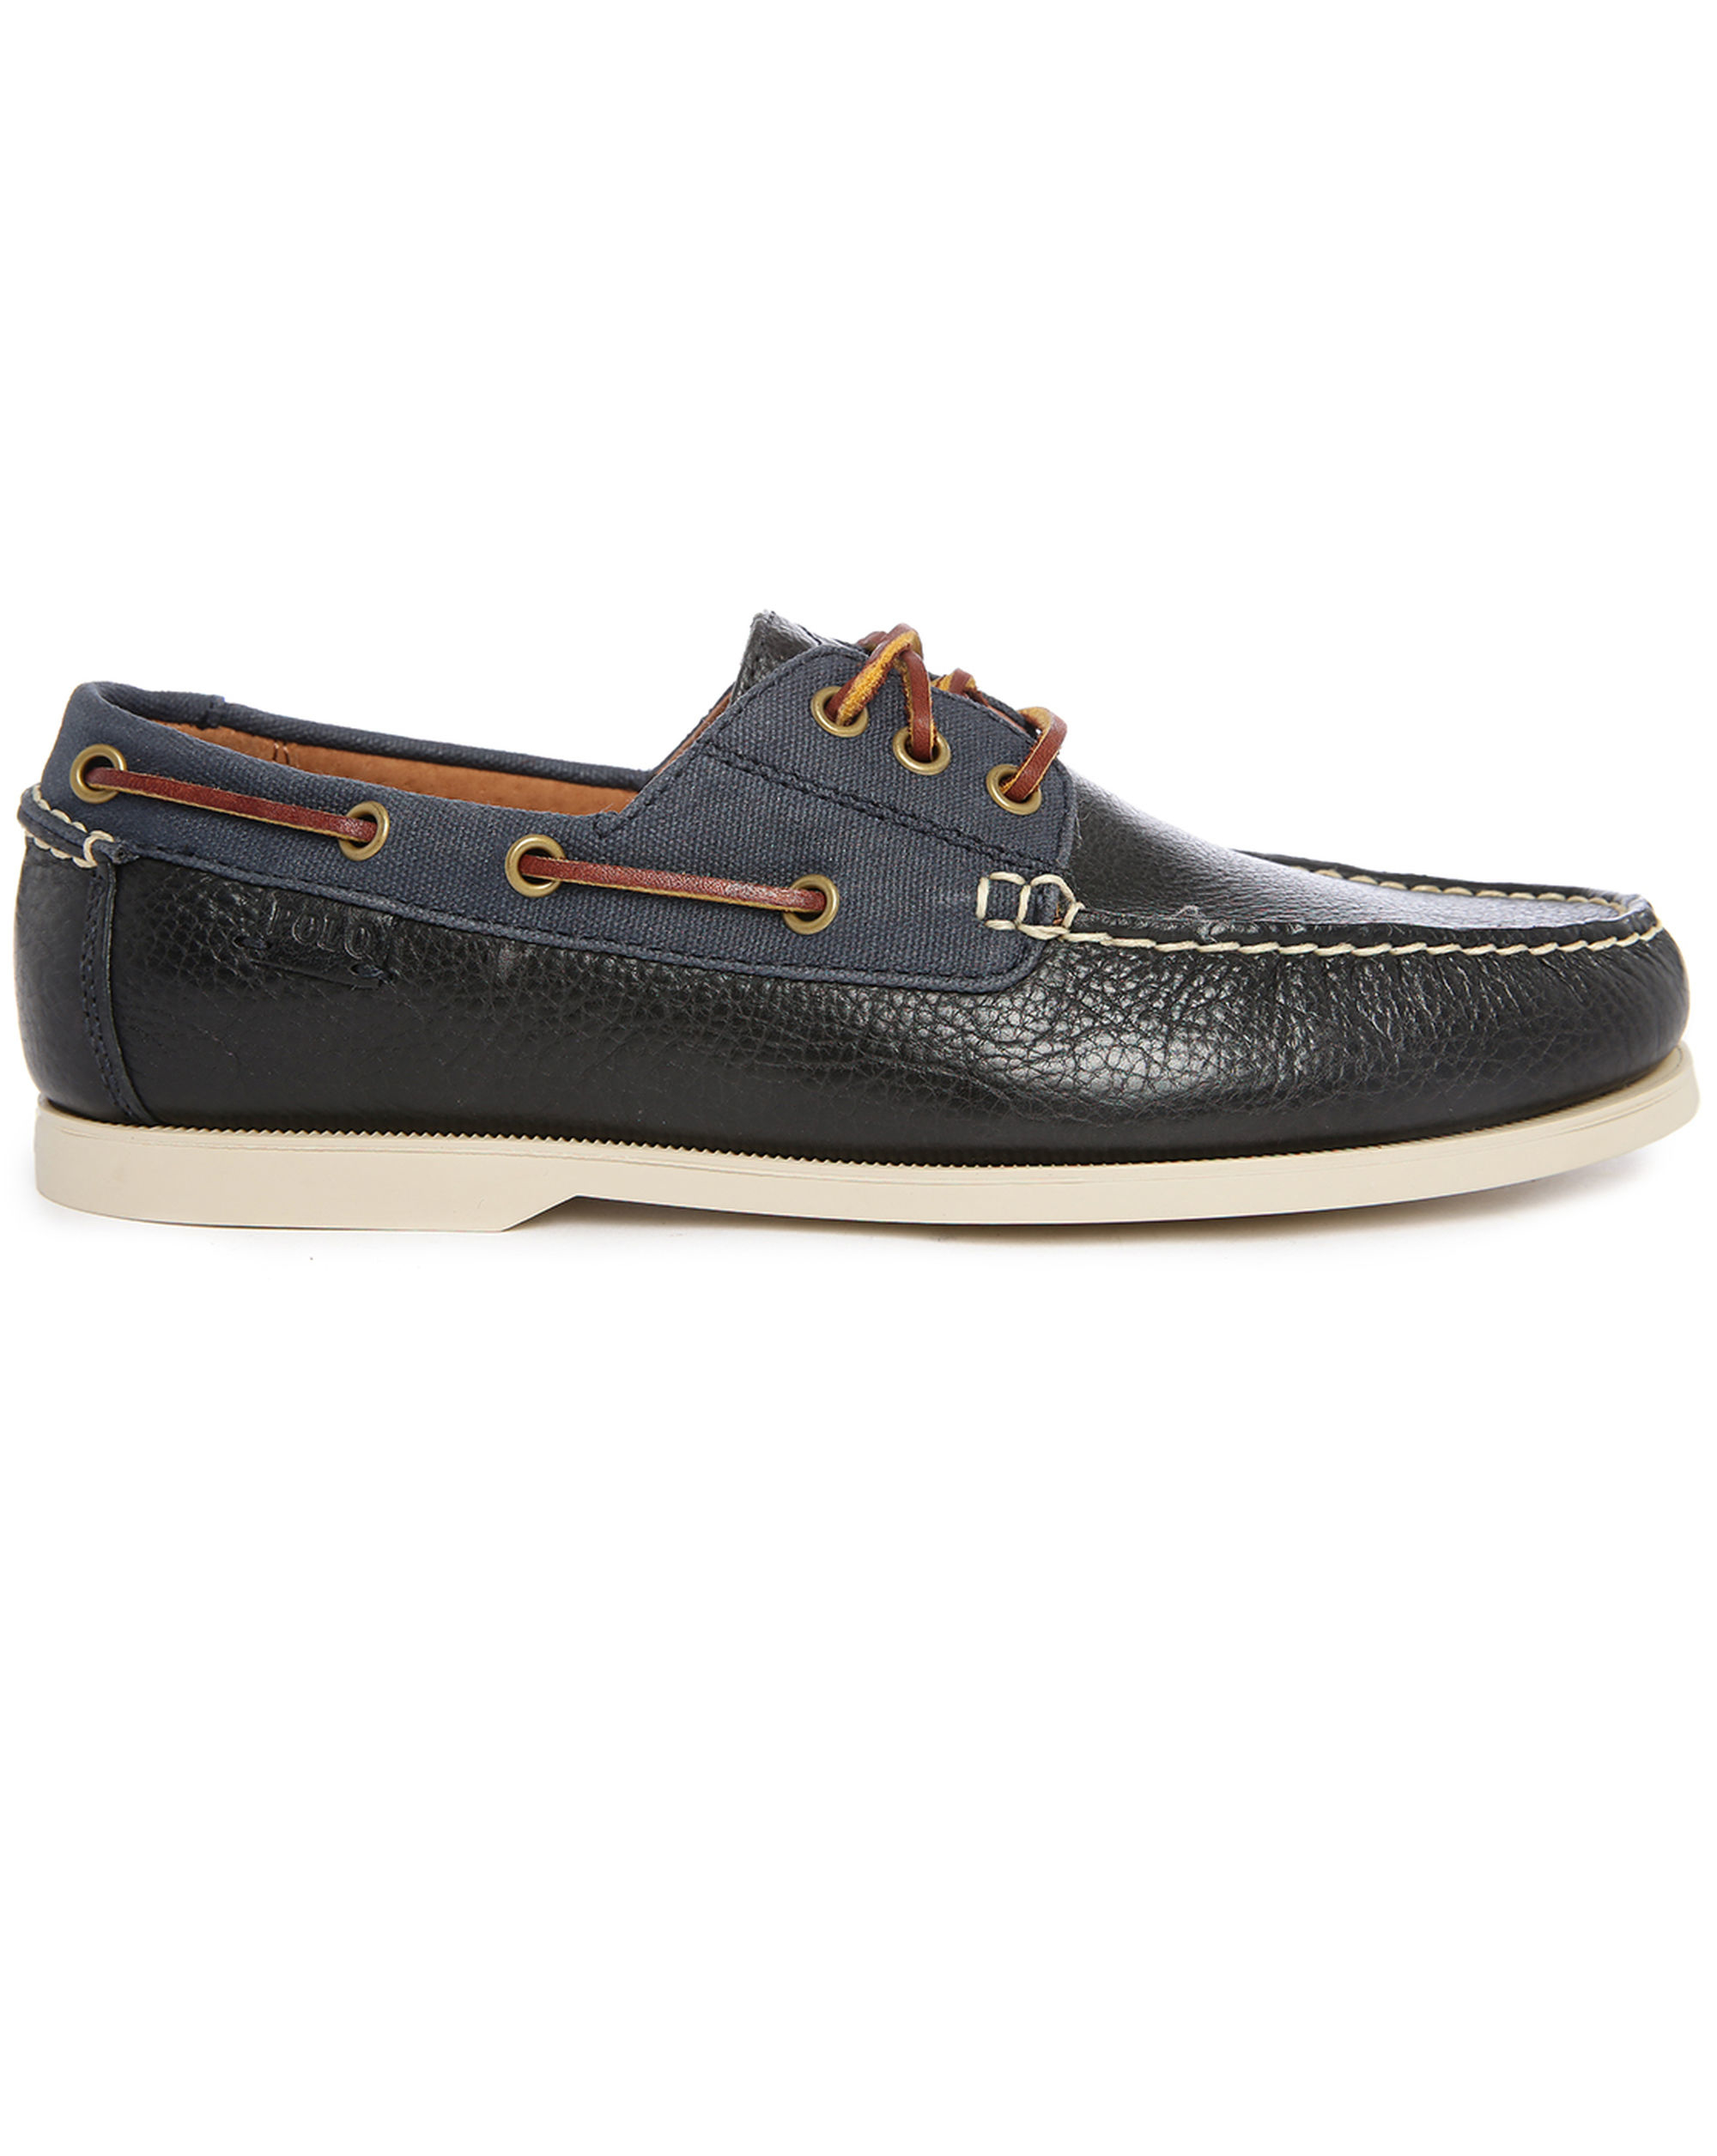 polo ralph bienne ii two tone navy leather canvas